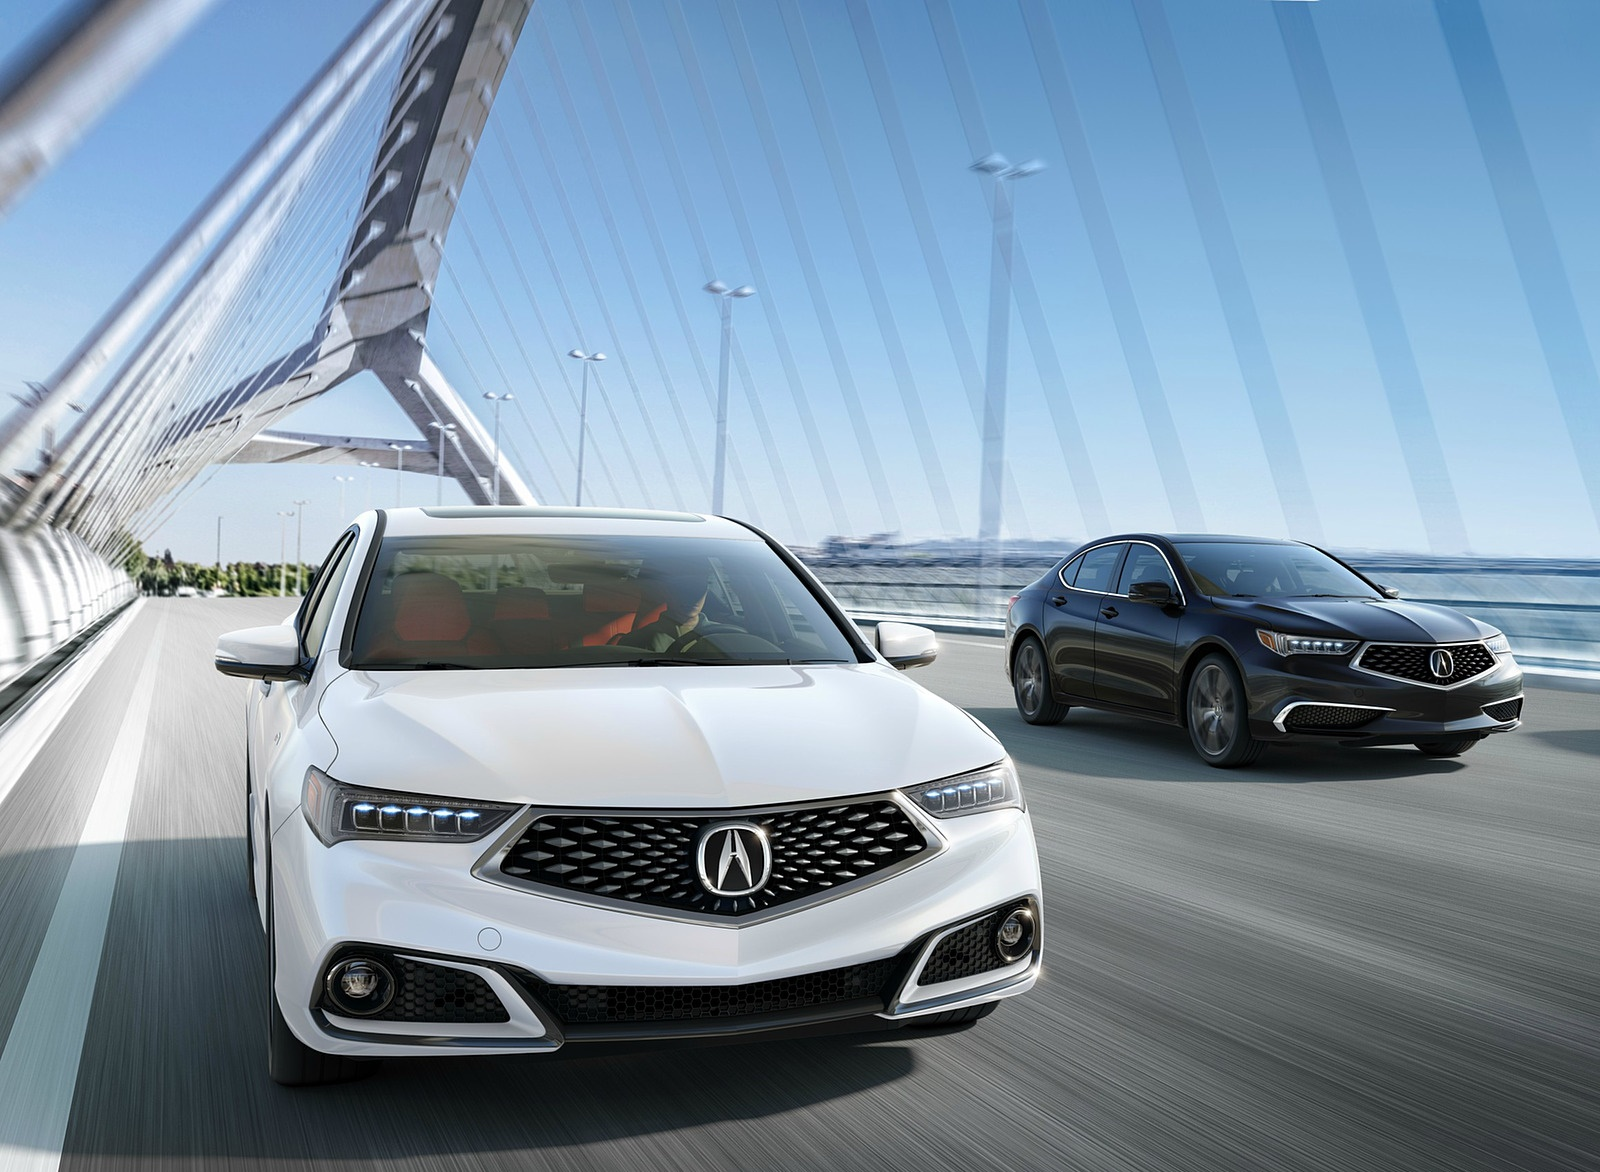 2019 Acura TLX A-Spec SH-AWD Wallpapers (1)